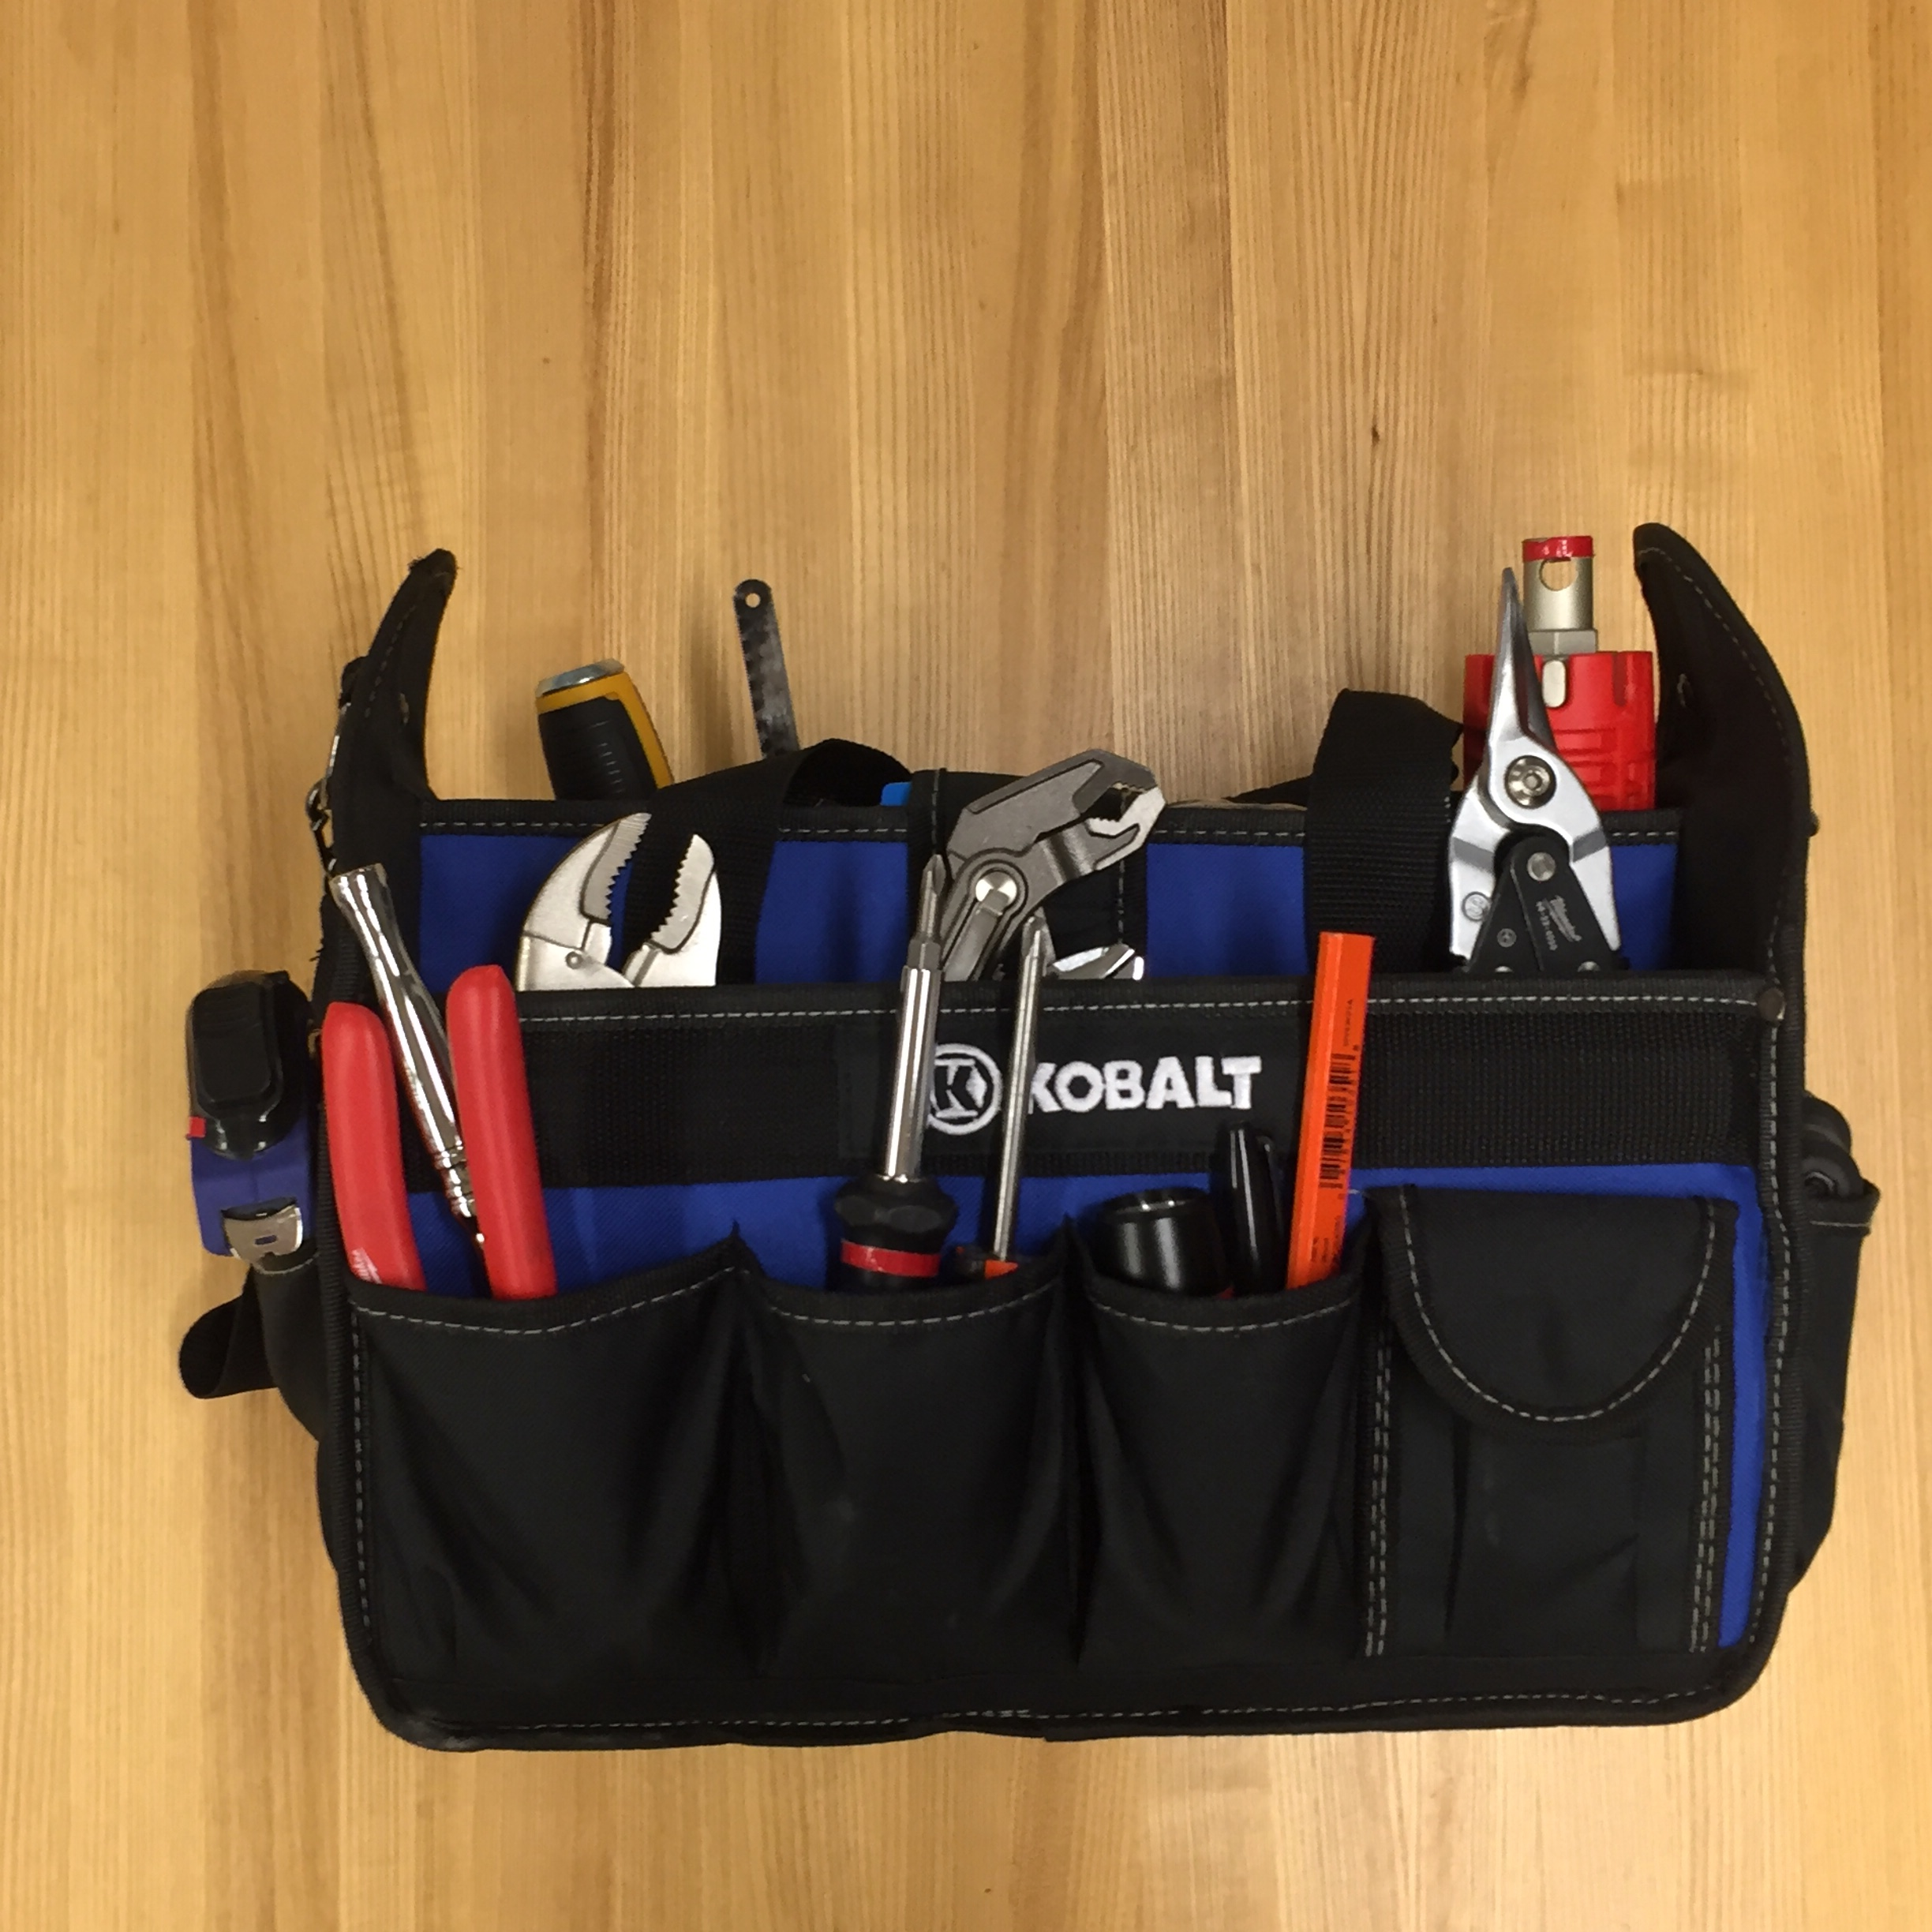 Every Fixer tool bag is filled with more than 30 tools - typically more than enough to get the job done.